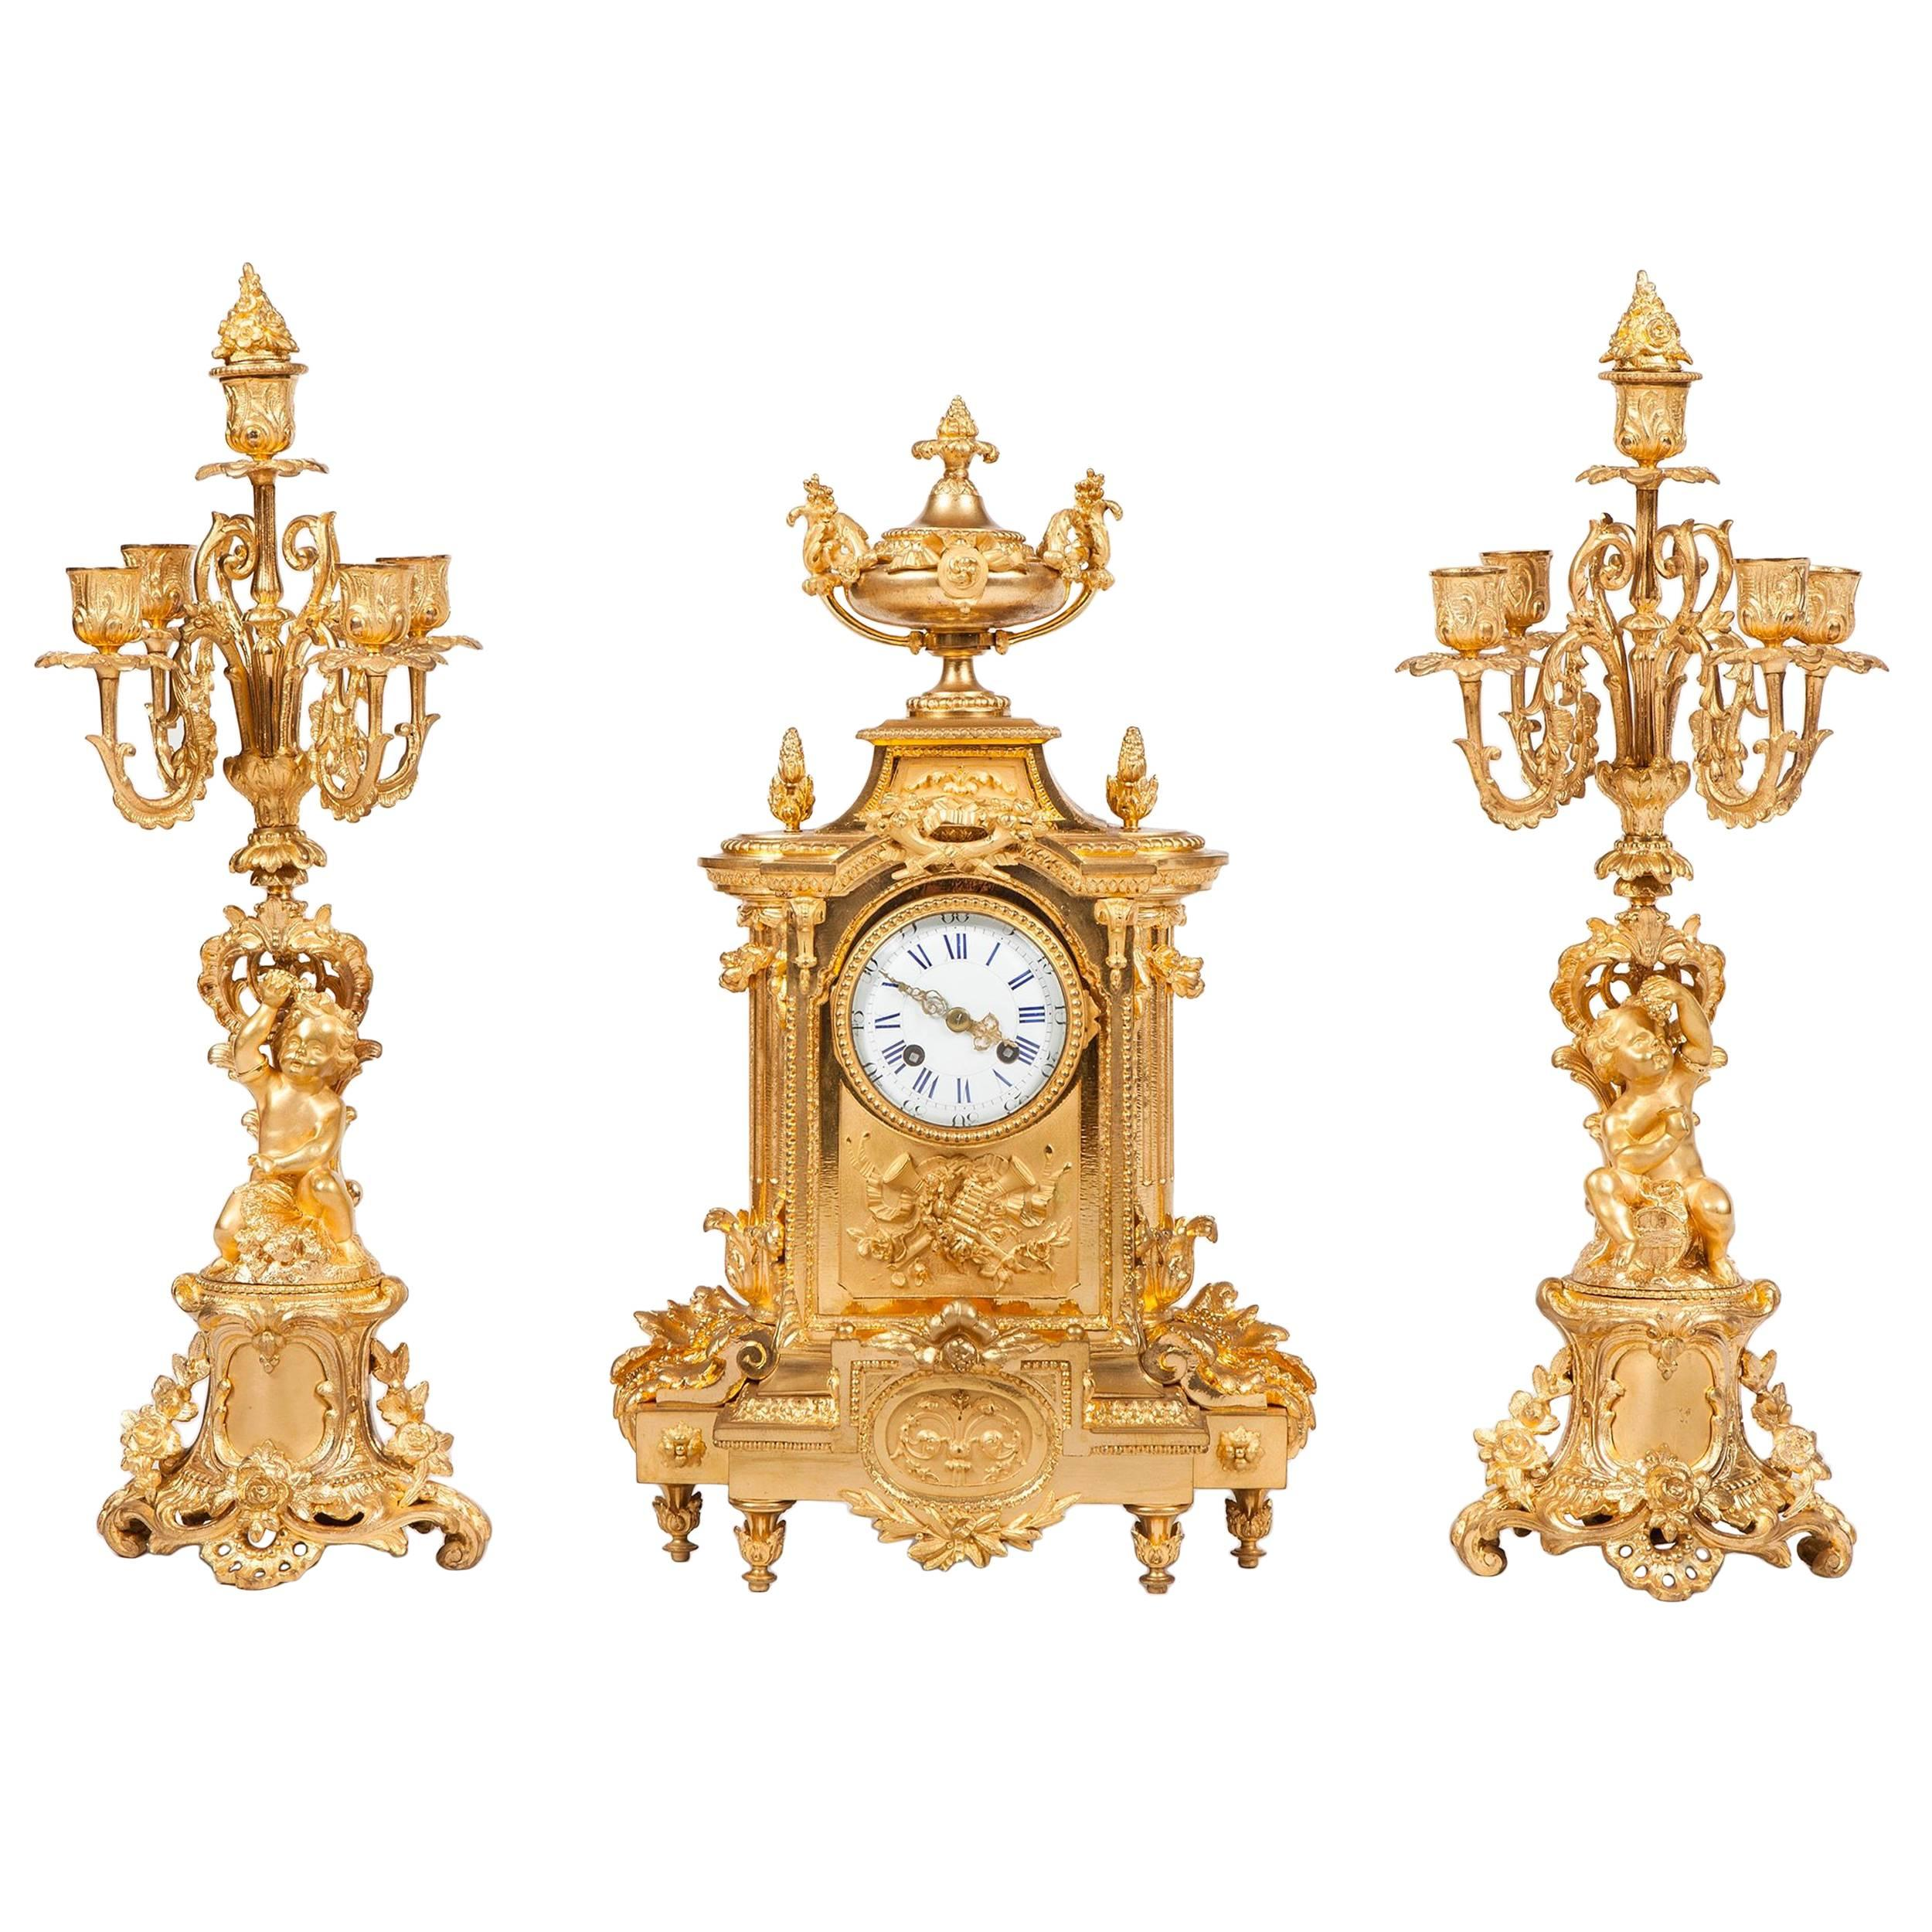 French 19th Century Gilt Bronze Mantel Clock and Candelabra